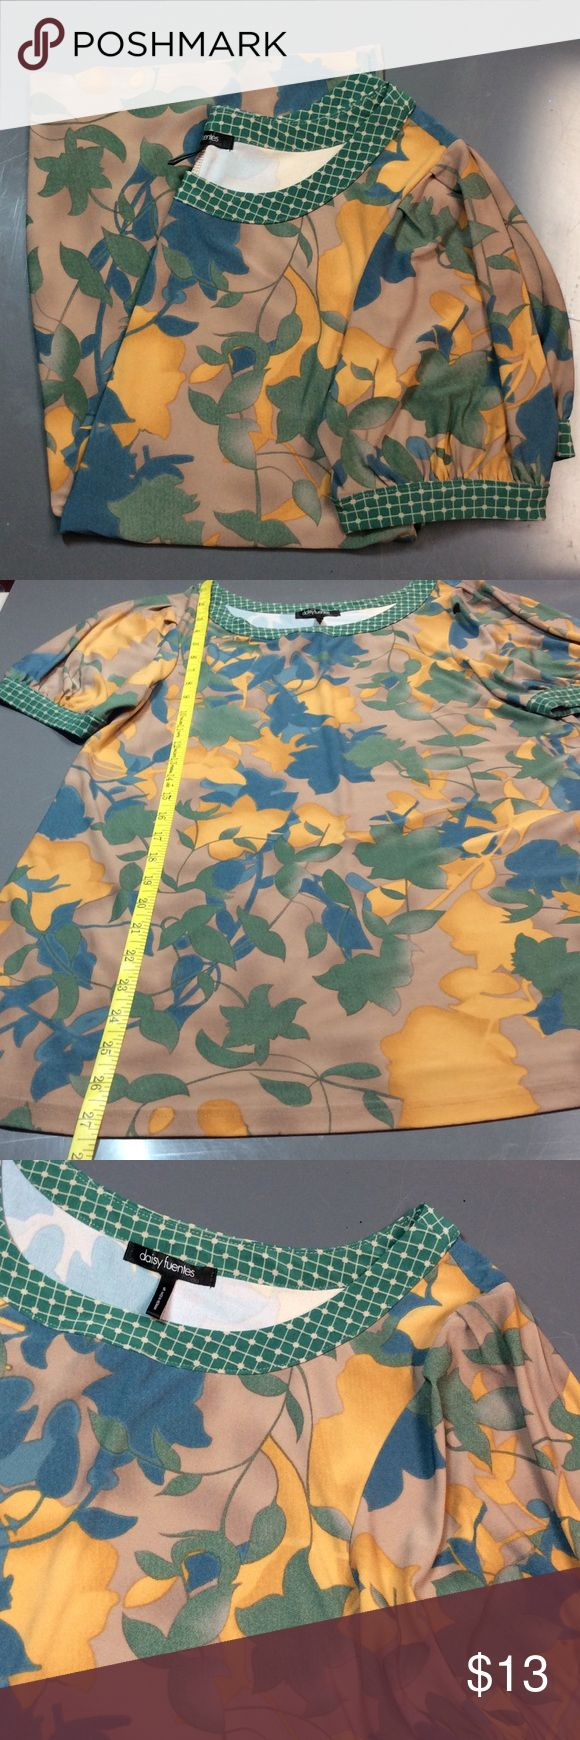 🆕Long Fall Floral Short Sleeve Top Mustard Colors are Mustard, Forest Green, Mocha, Navy and Cream. Cut for warm fall days! Polyester - spandex  blend Daisy Fuentes Tops Blouses